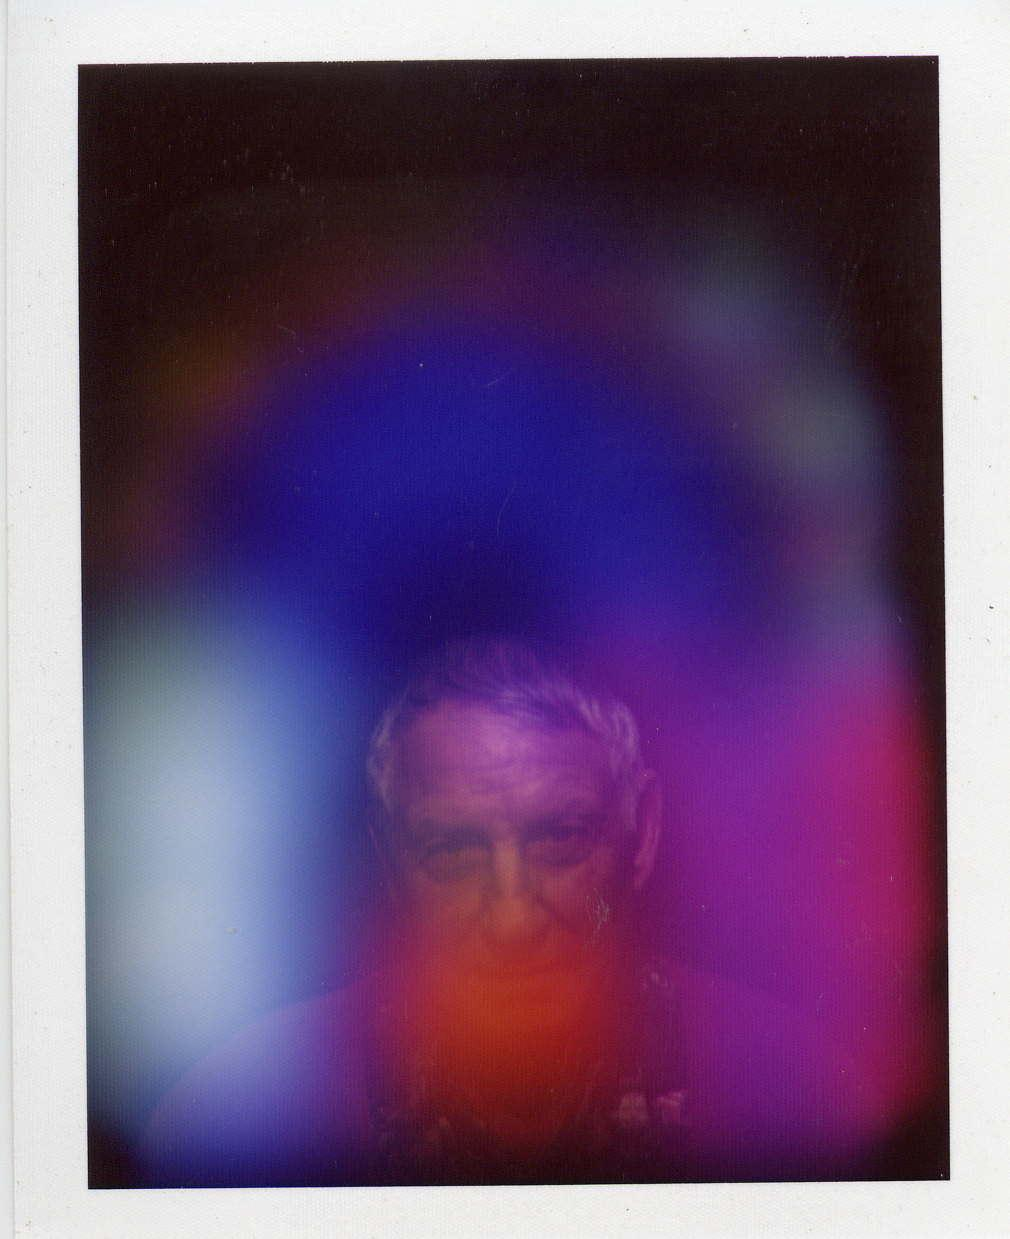 The Libra Guide to Aura and Aura Photographs - Online Book